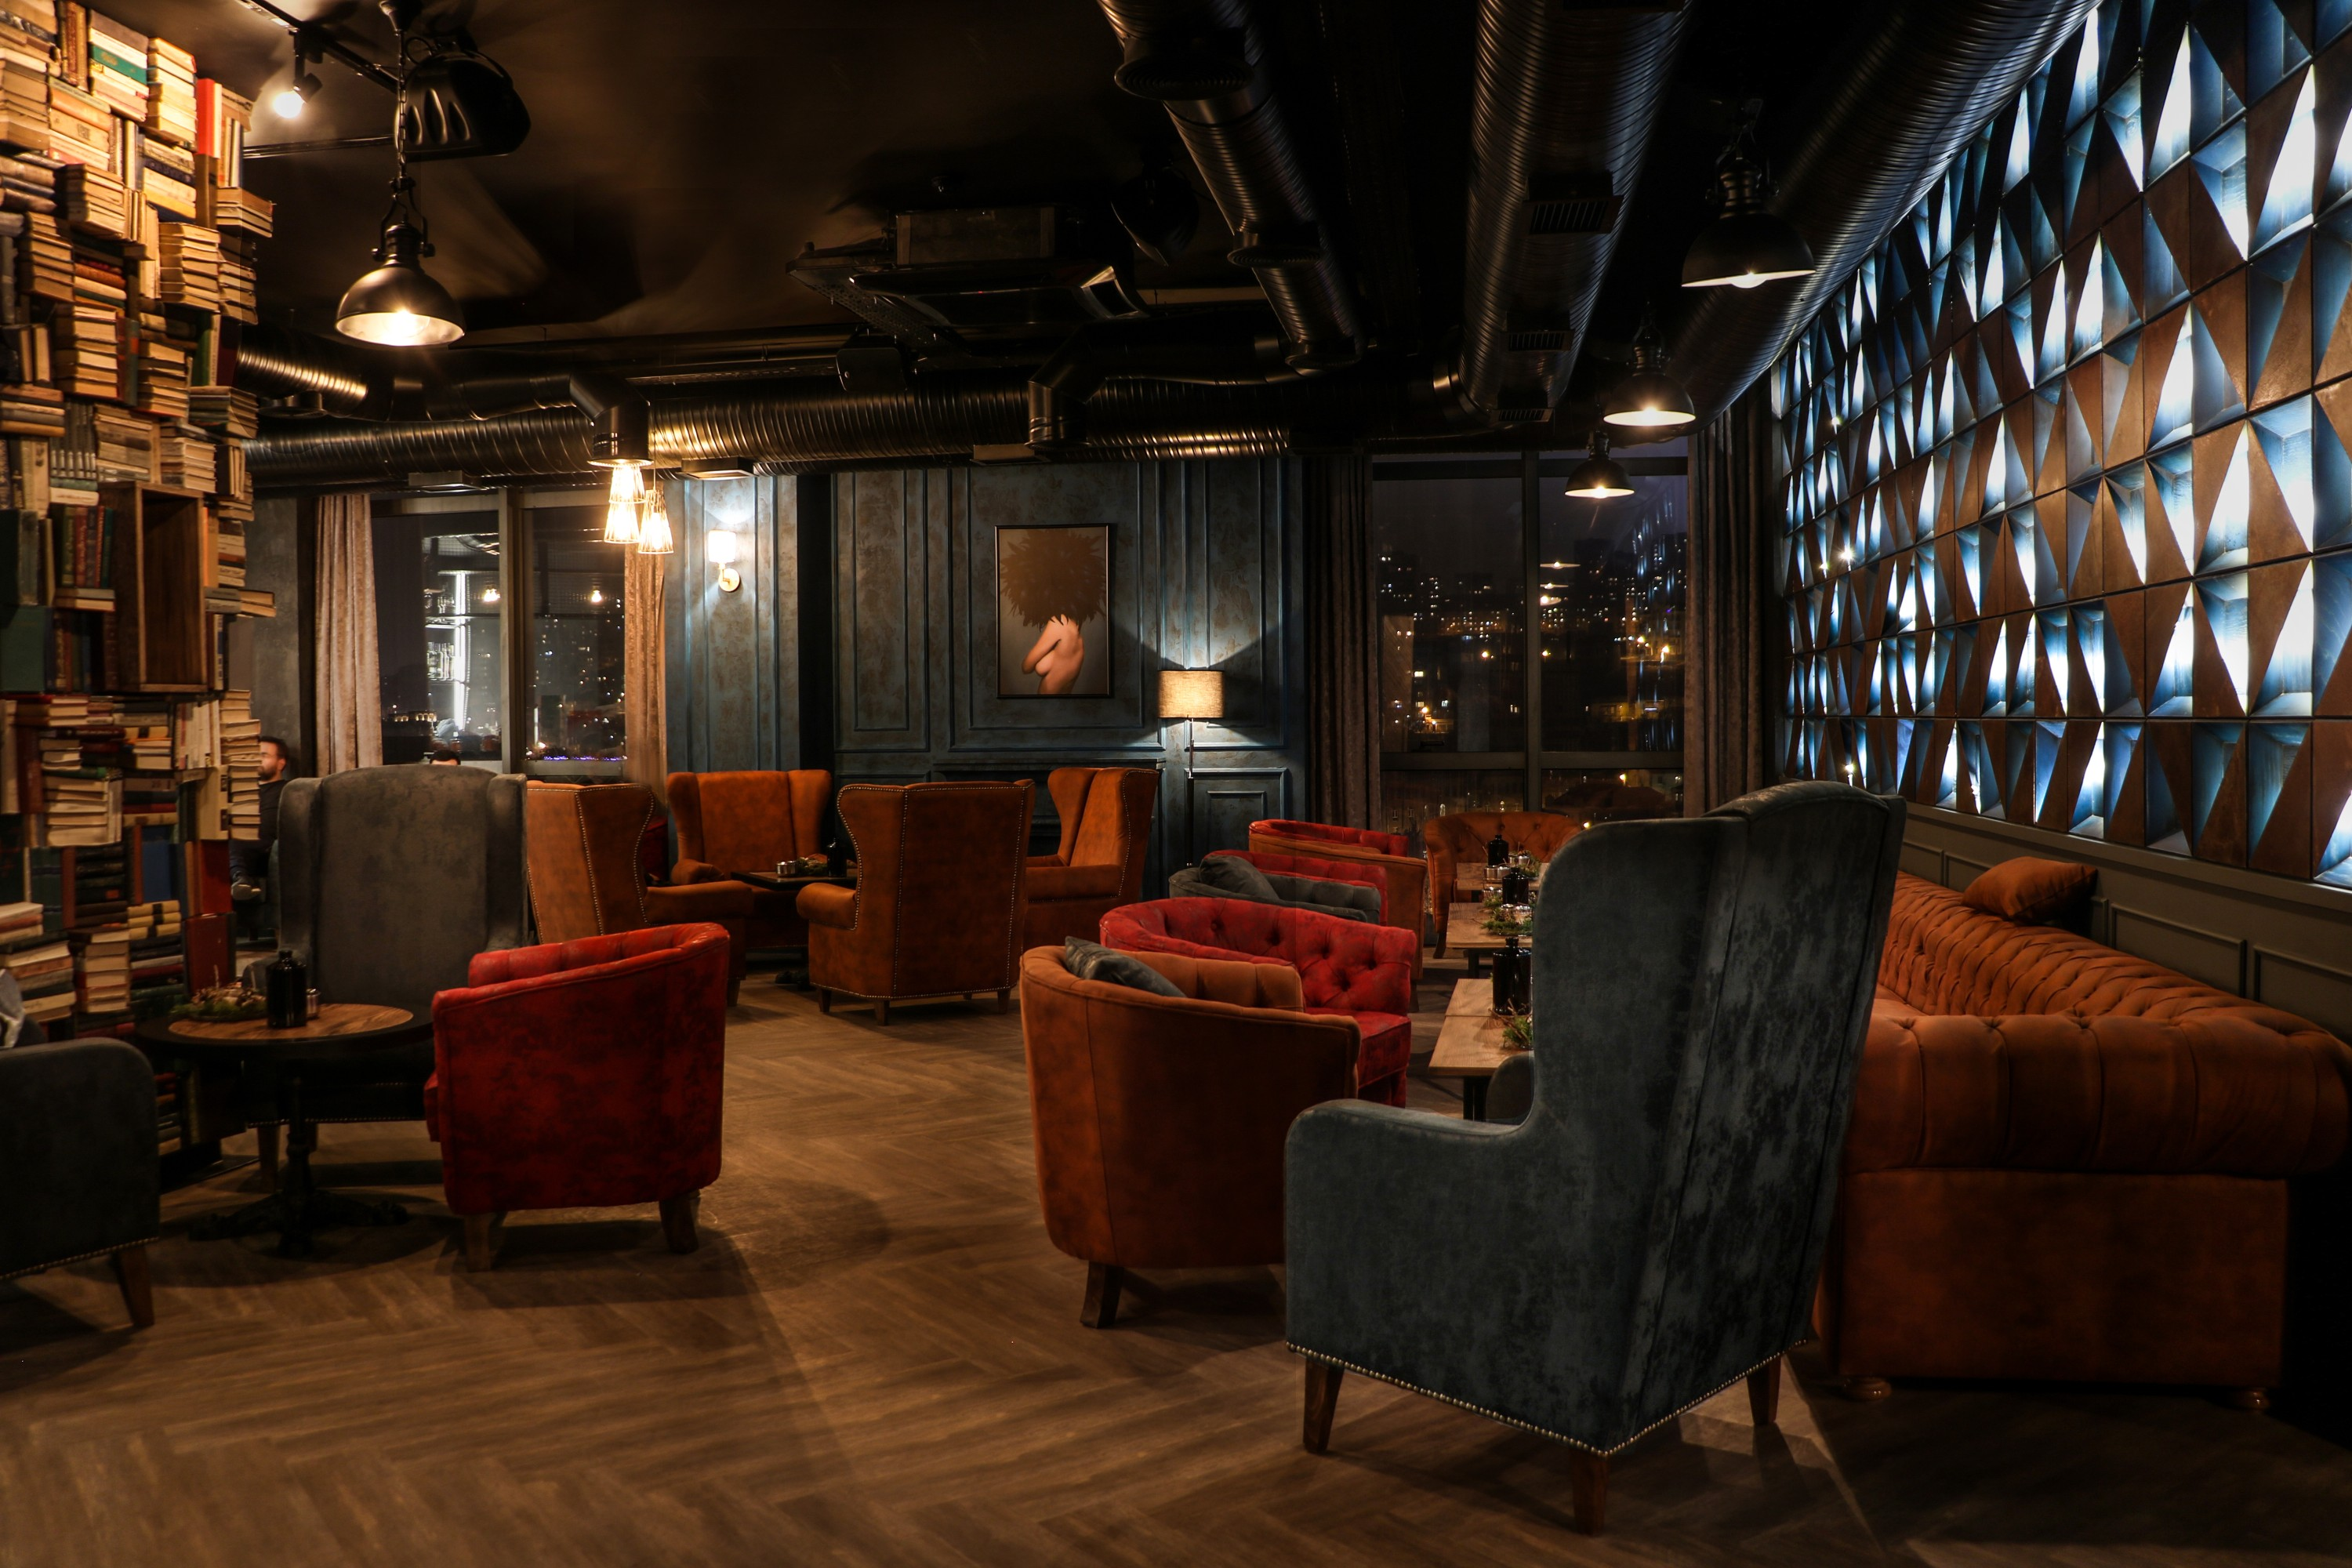 Opera Suite Hotel Yerevan 13 Lounge & Bar